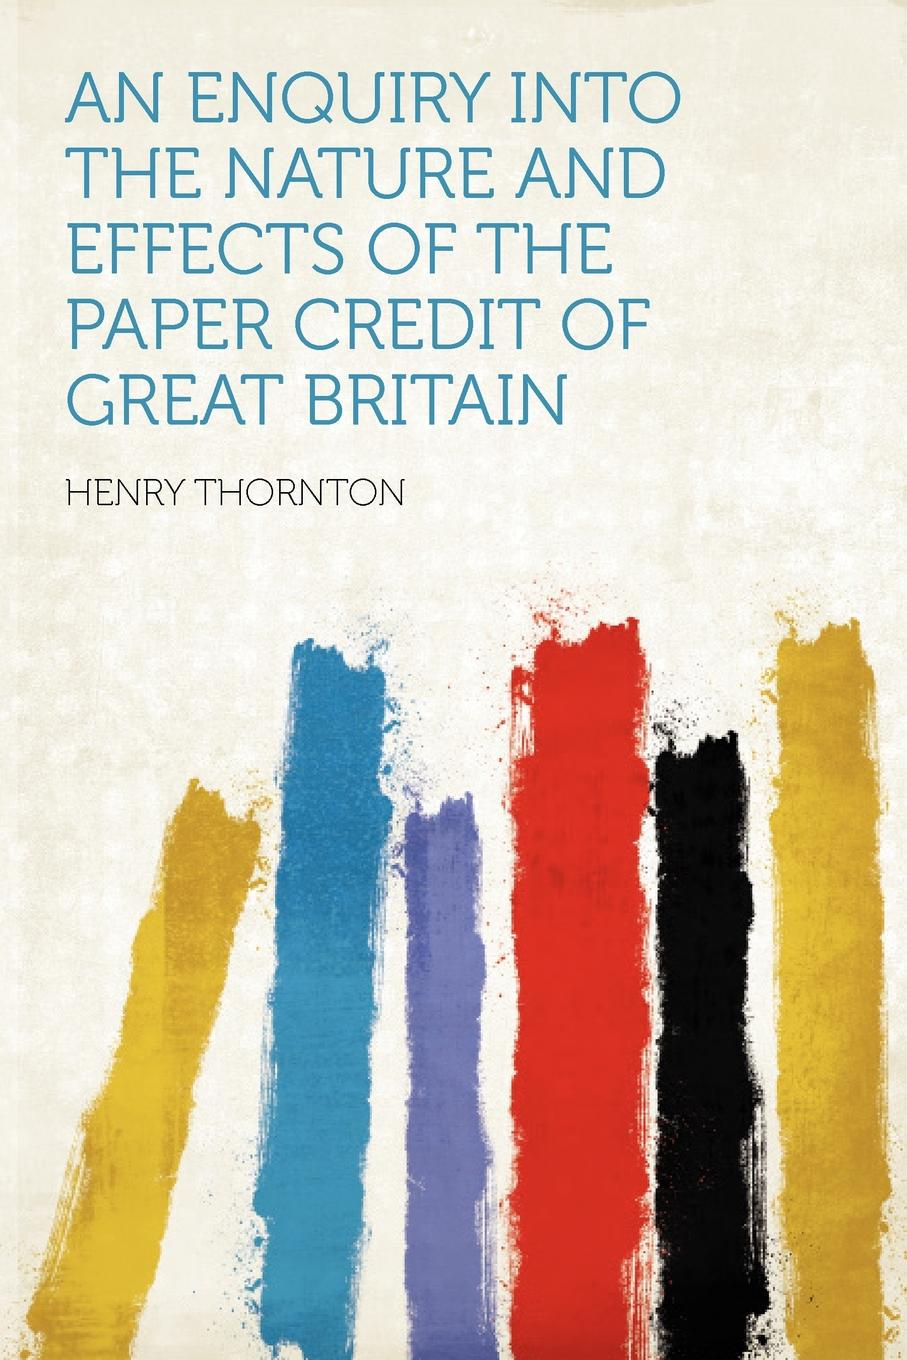 An Enquiry Into the Nature and Effects of Paper Credit Great Britain